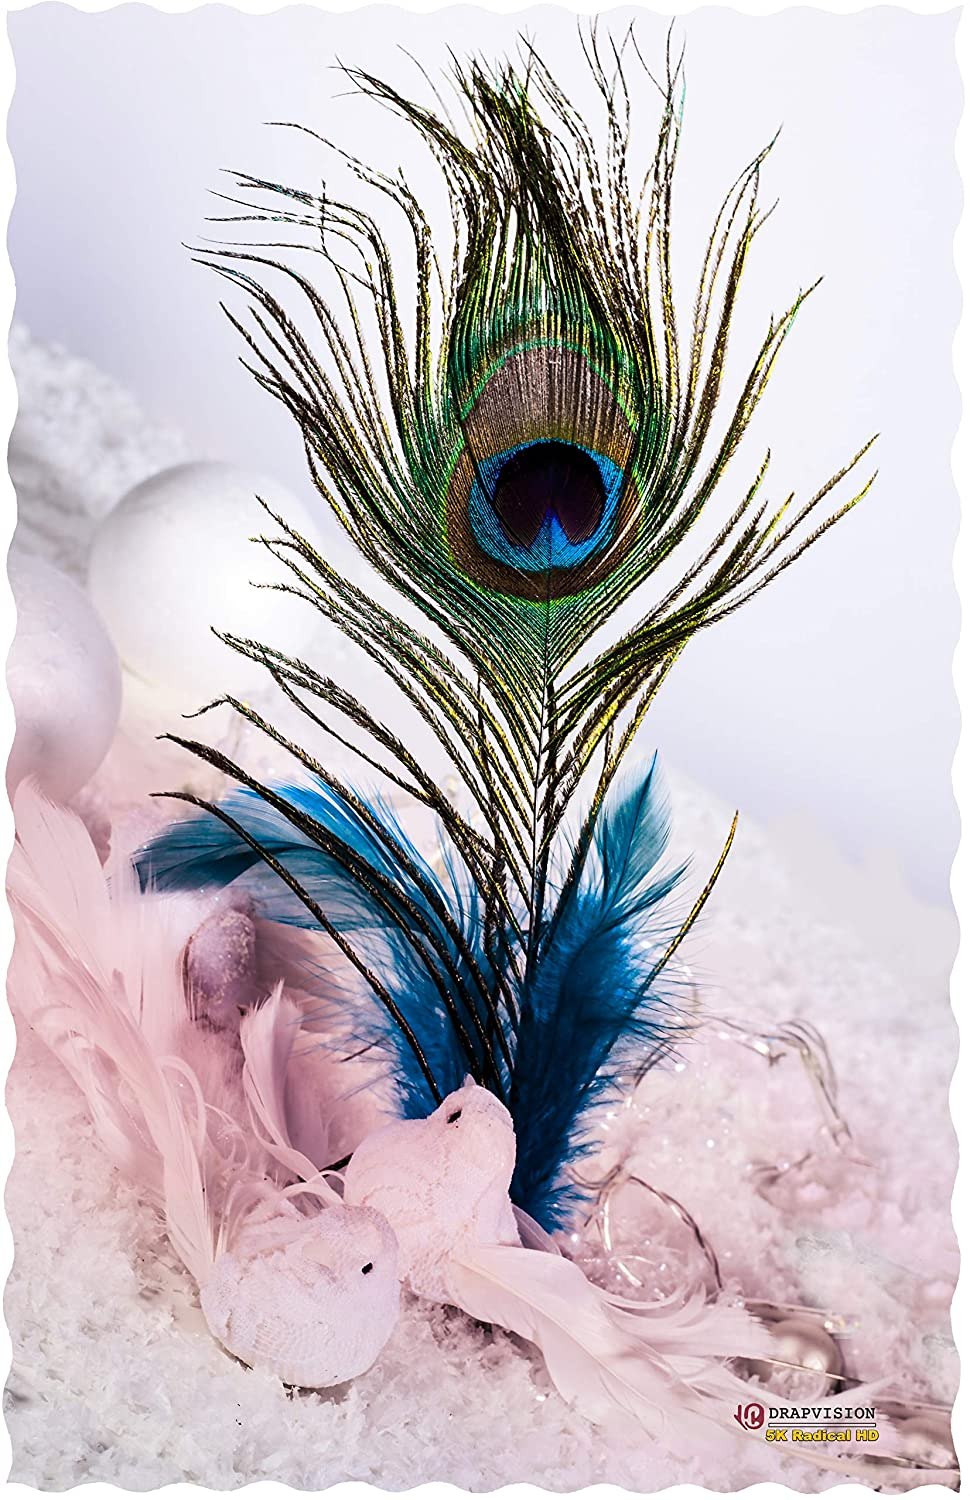 Drapvision Private Limited 5k Radical Hd Peacock Feather God Krishna Poster For Room Home And Offices Paper 11 X 17 Inch Multicolour Amazon In Home Kitchen